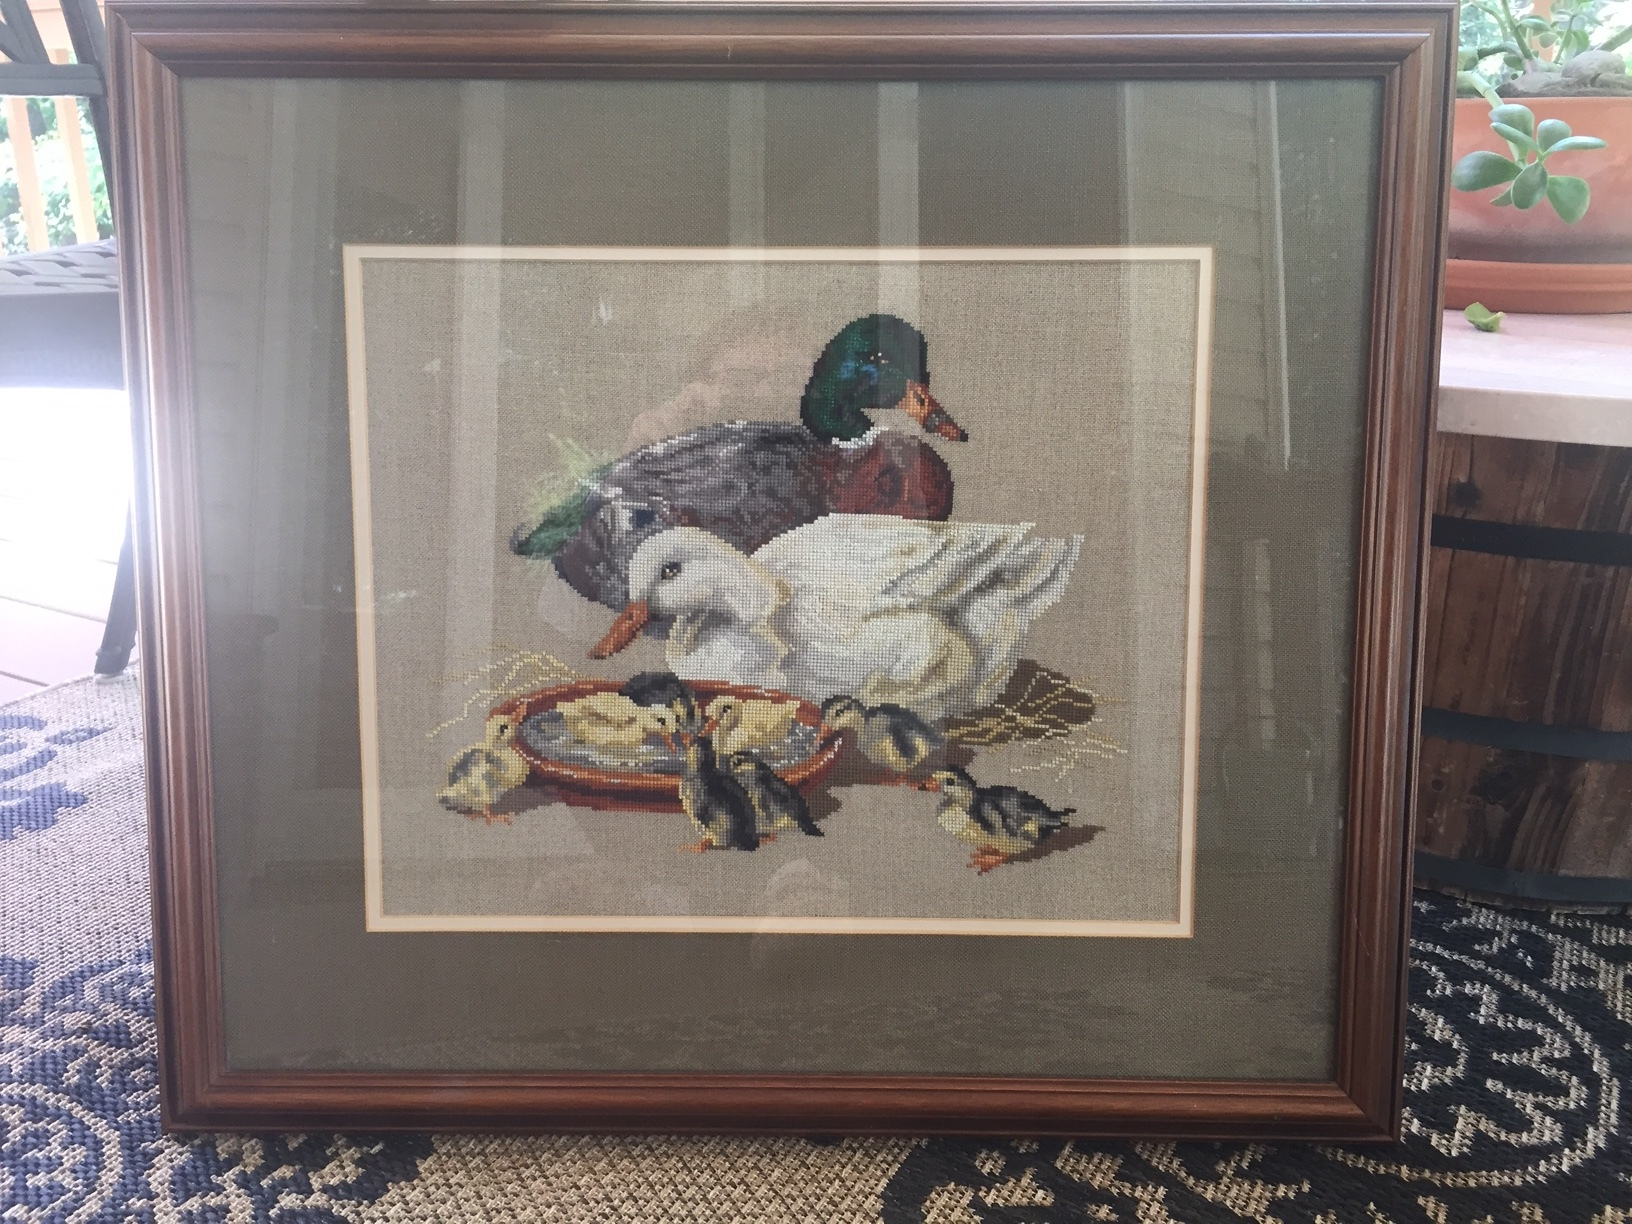 Professionally framed needlepoint of duck family donated by Pattie Swenson